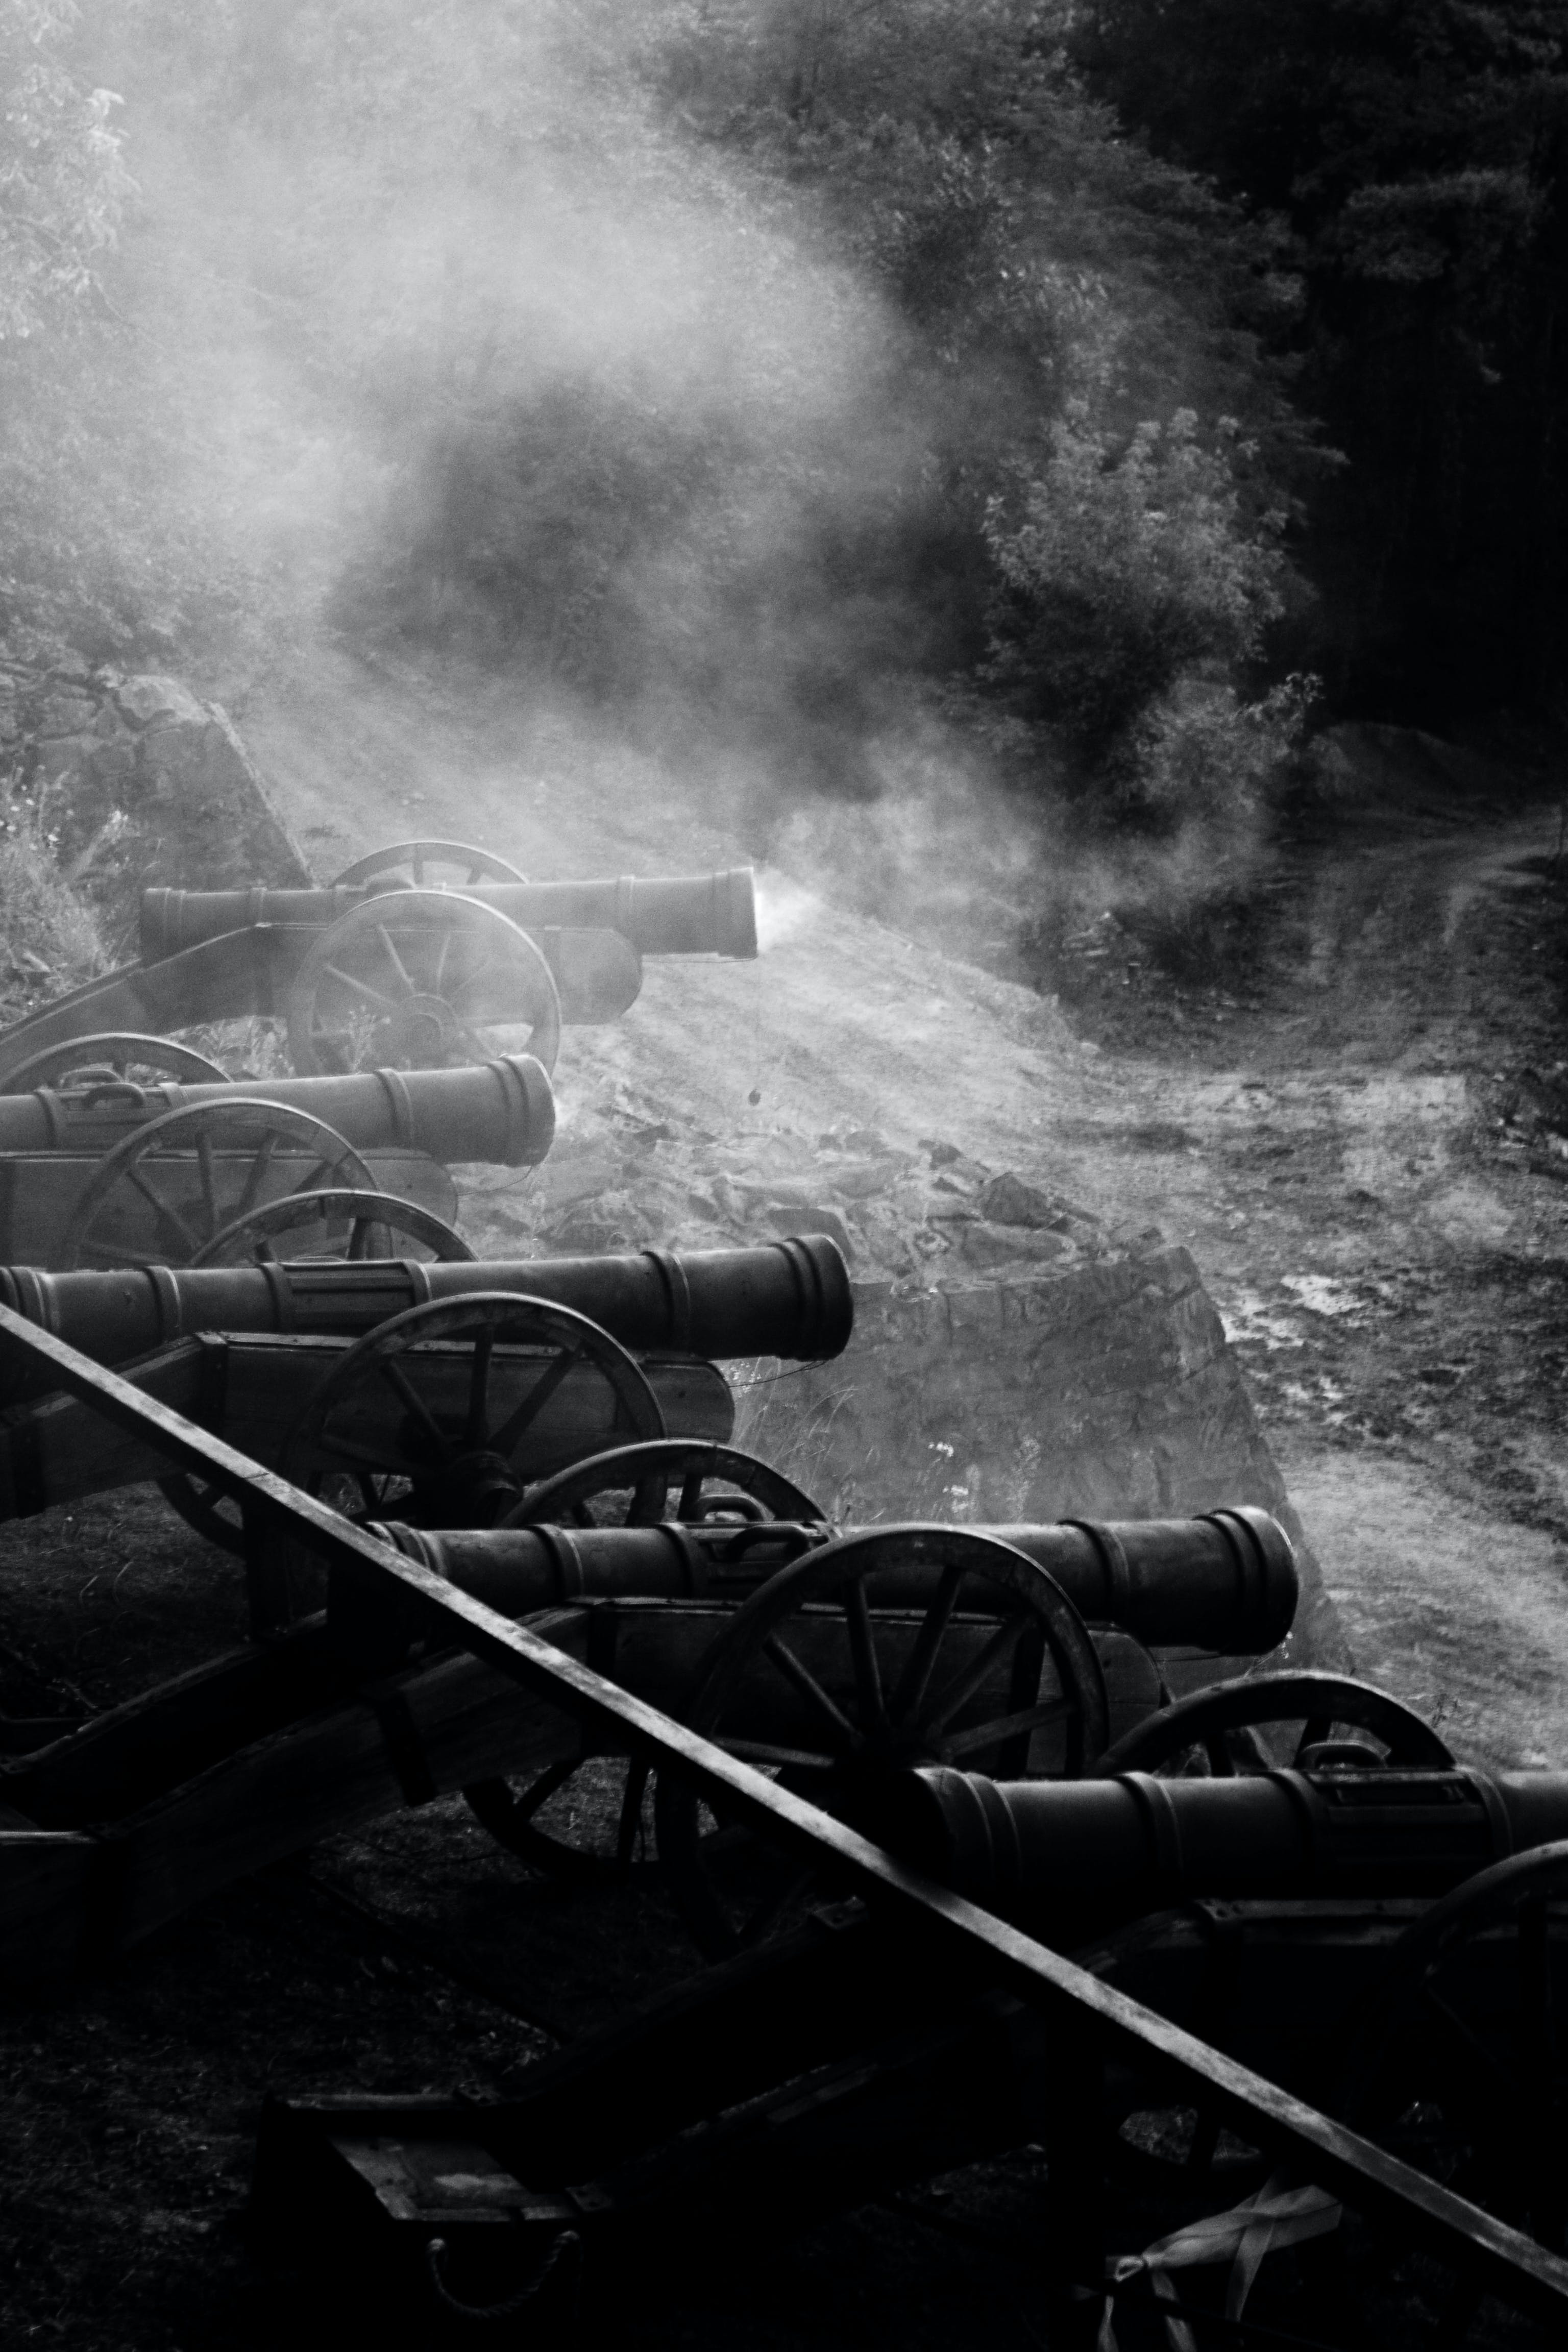 Free stock photo of battle, black and white, cannon, canon